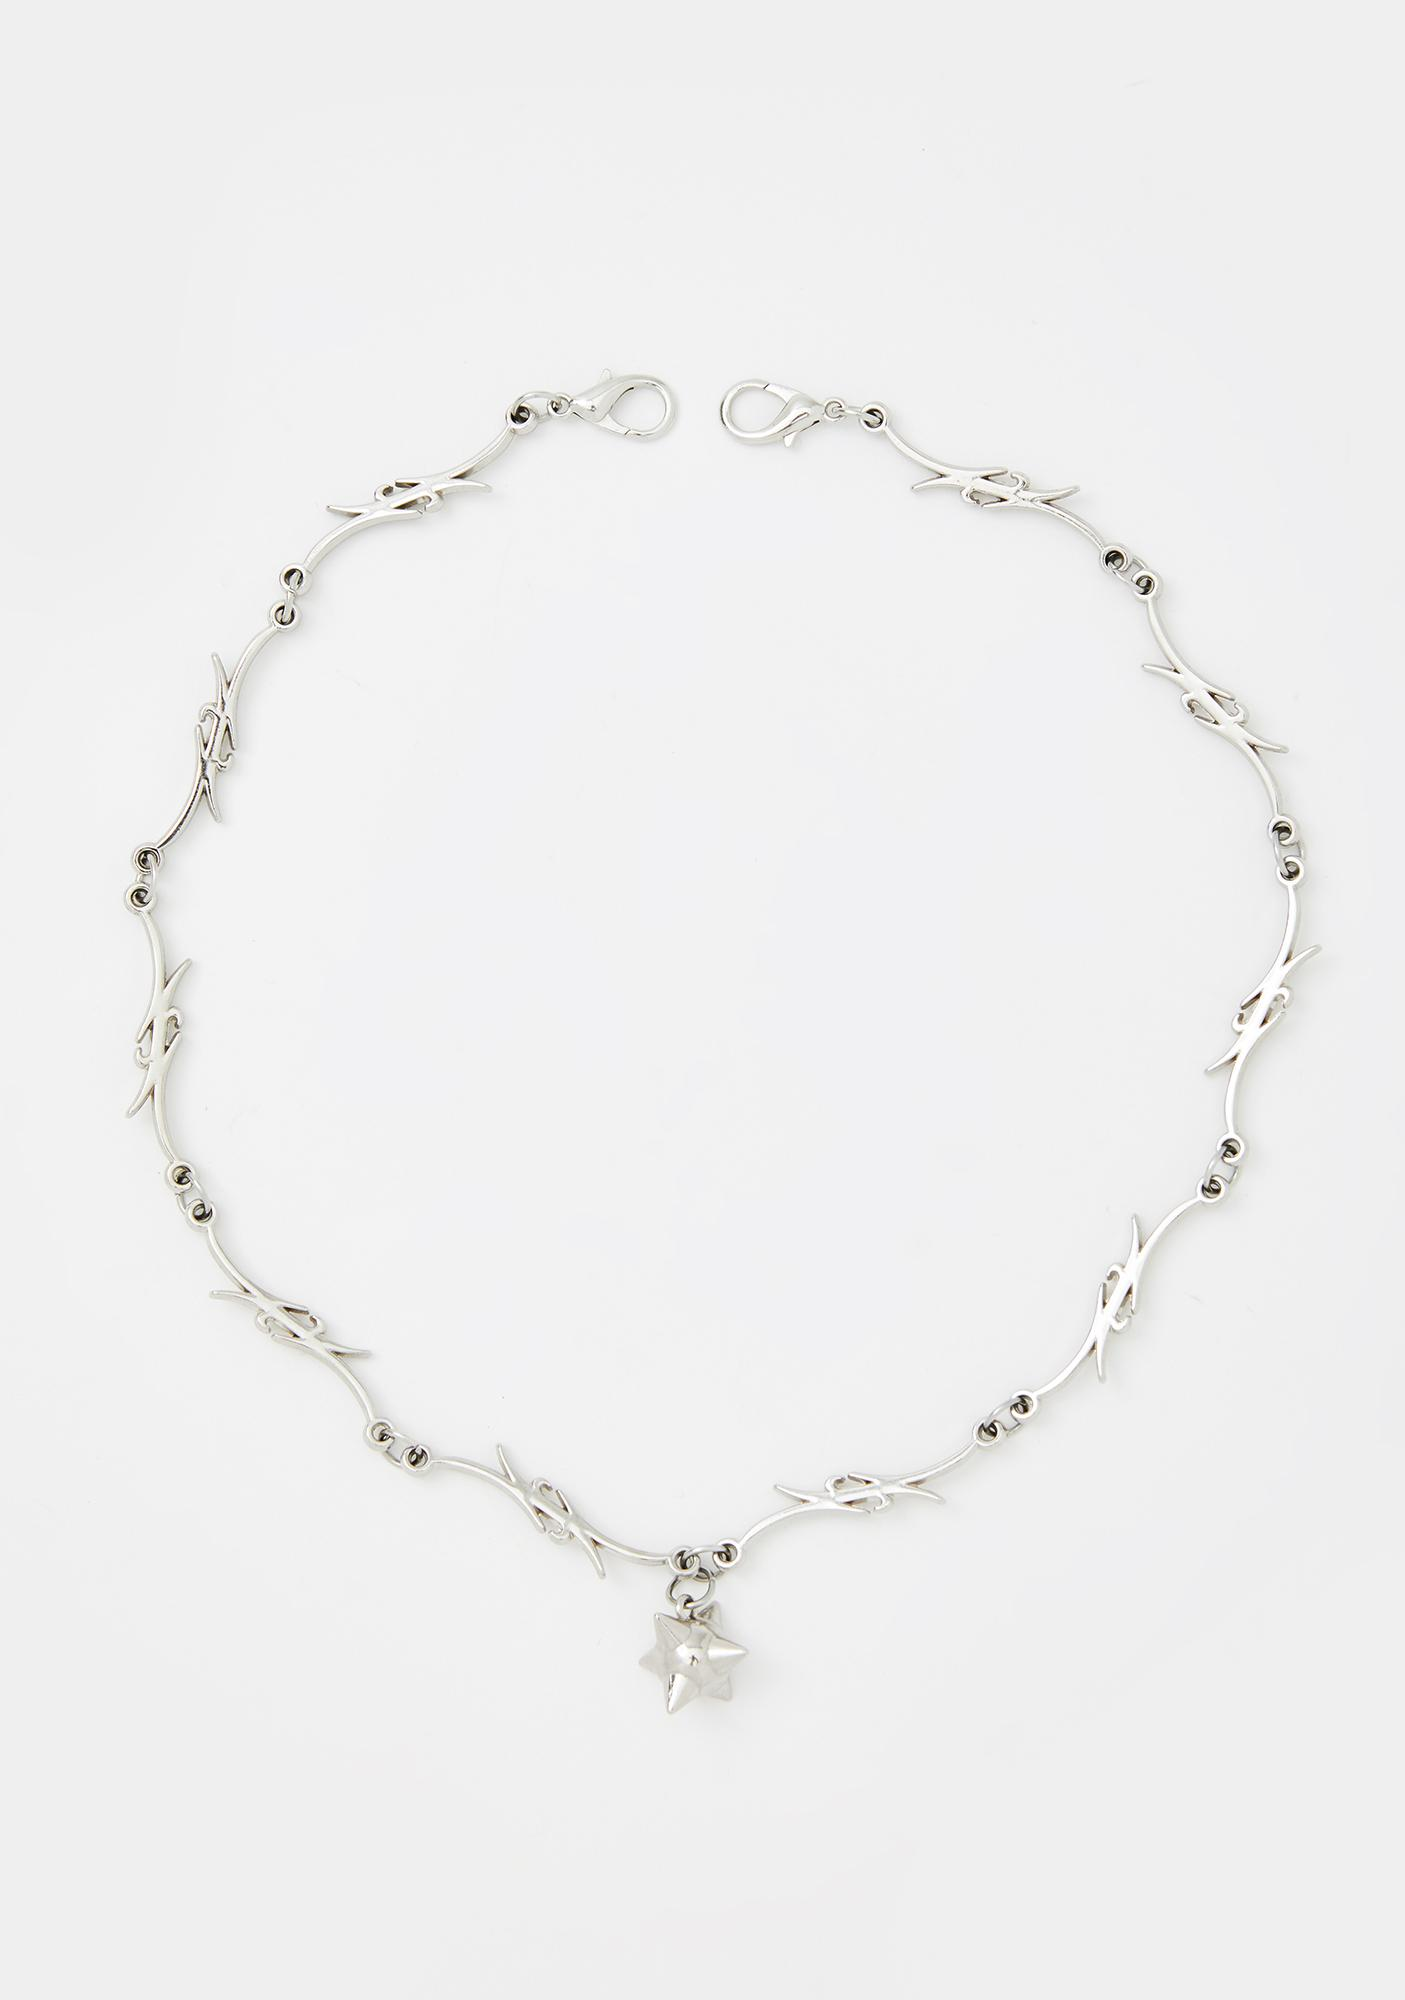 Atomic Punk Barbed Necklace